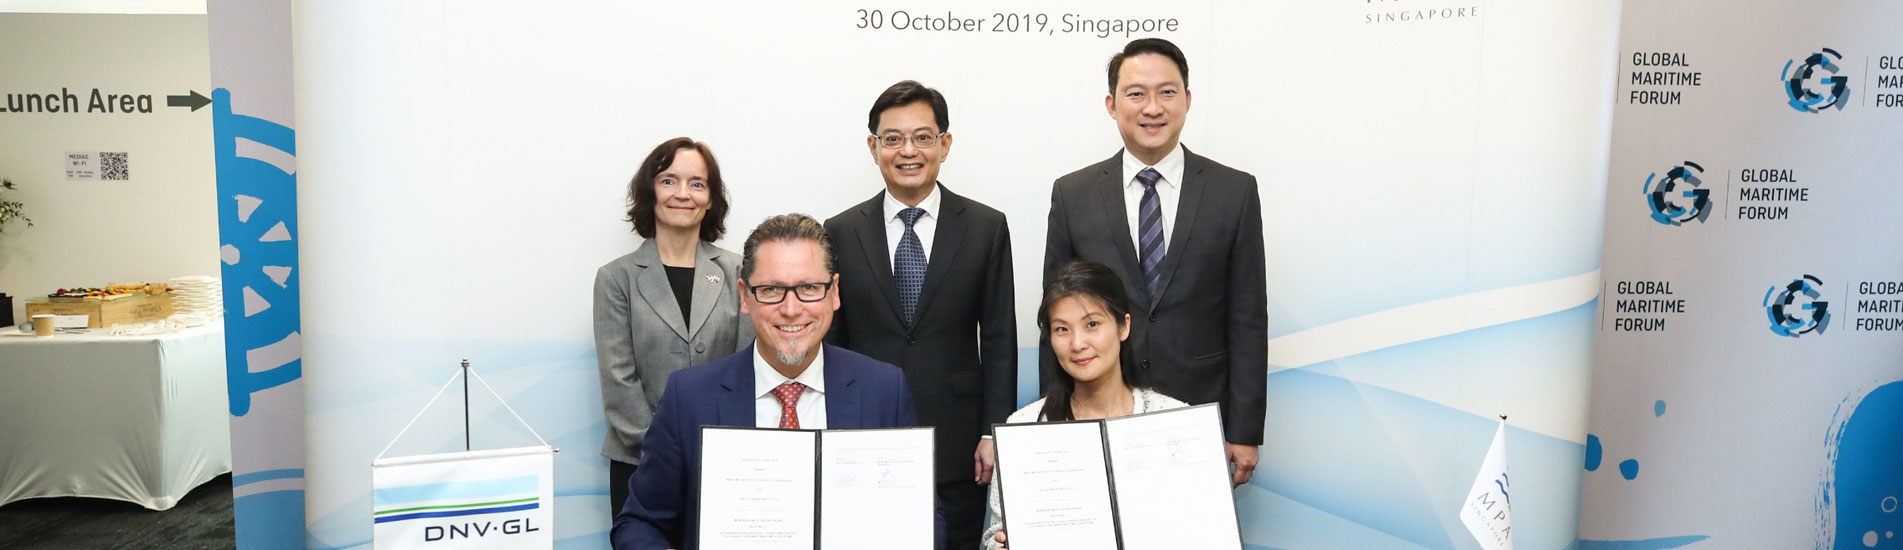 Signing the MoU (front): Ms. Quah Ley Hoon, Chief Executive, MPA, and Remi Eriksen, Group President & CEO, DNV GL. (Back, left to right): Her Excellence Anita Nergaard, Norway's Ambassador to Singapore; Mr. Heng Swee Keat, Deputy Prime Minister of Singapore and Minister for Finance, and Dr. Lam Pin Min, Senior Minister of State of Singapore